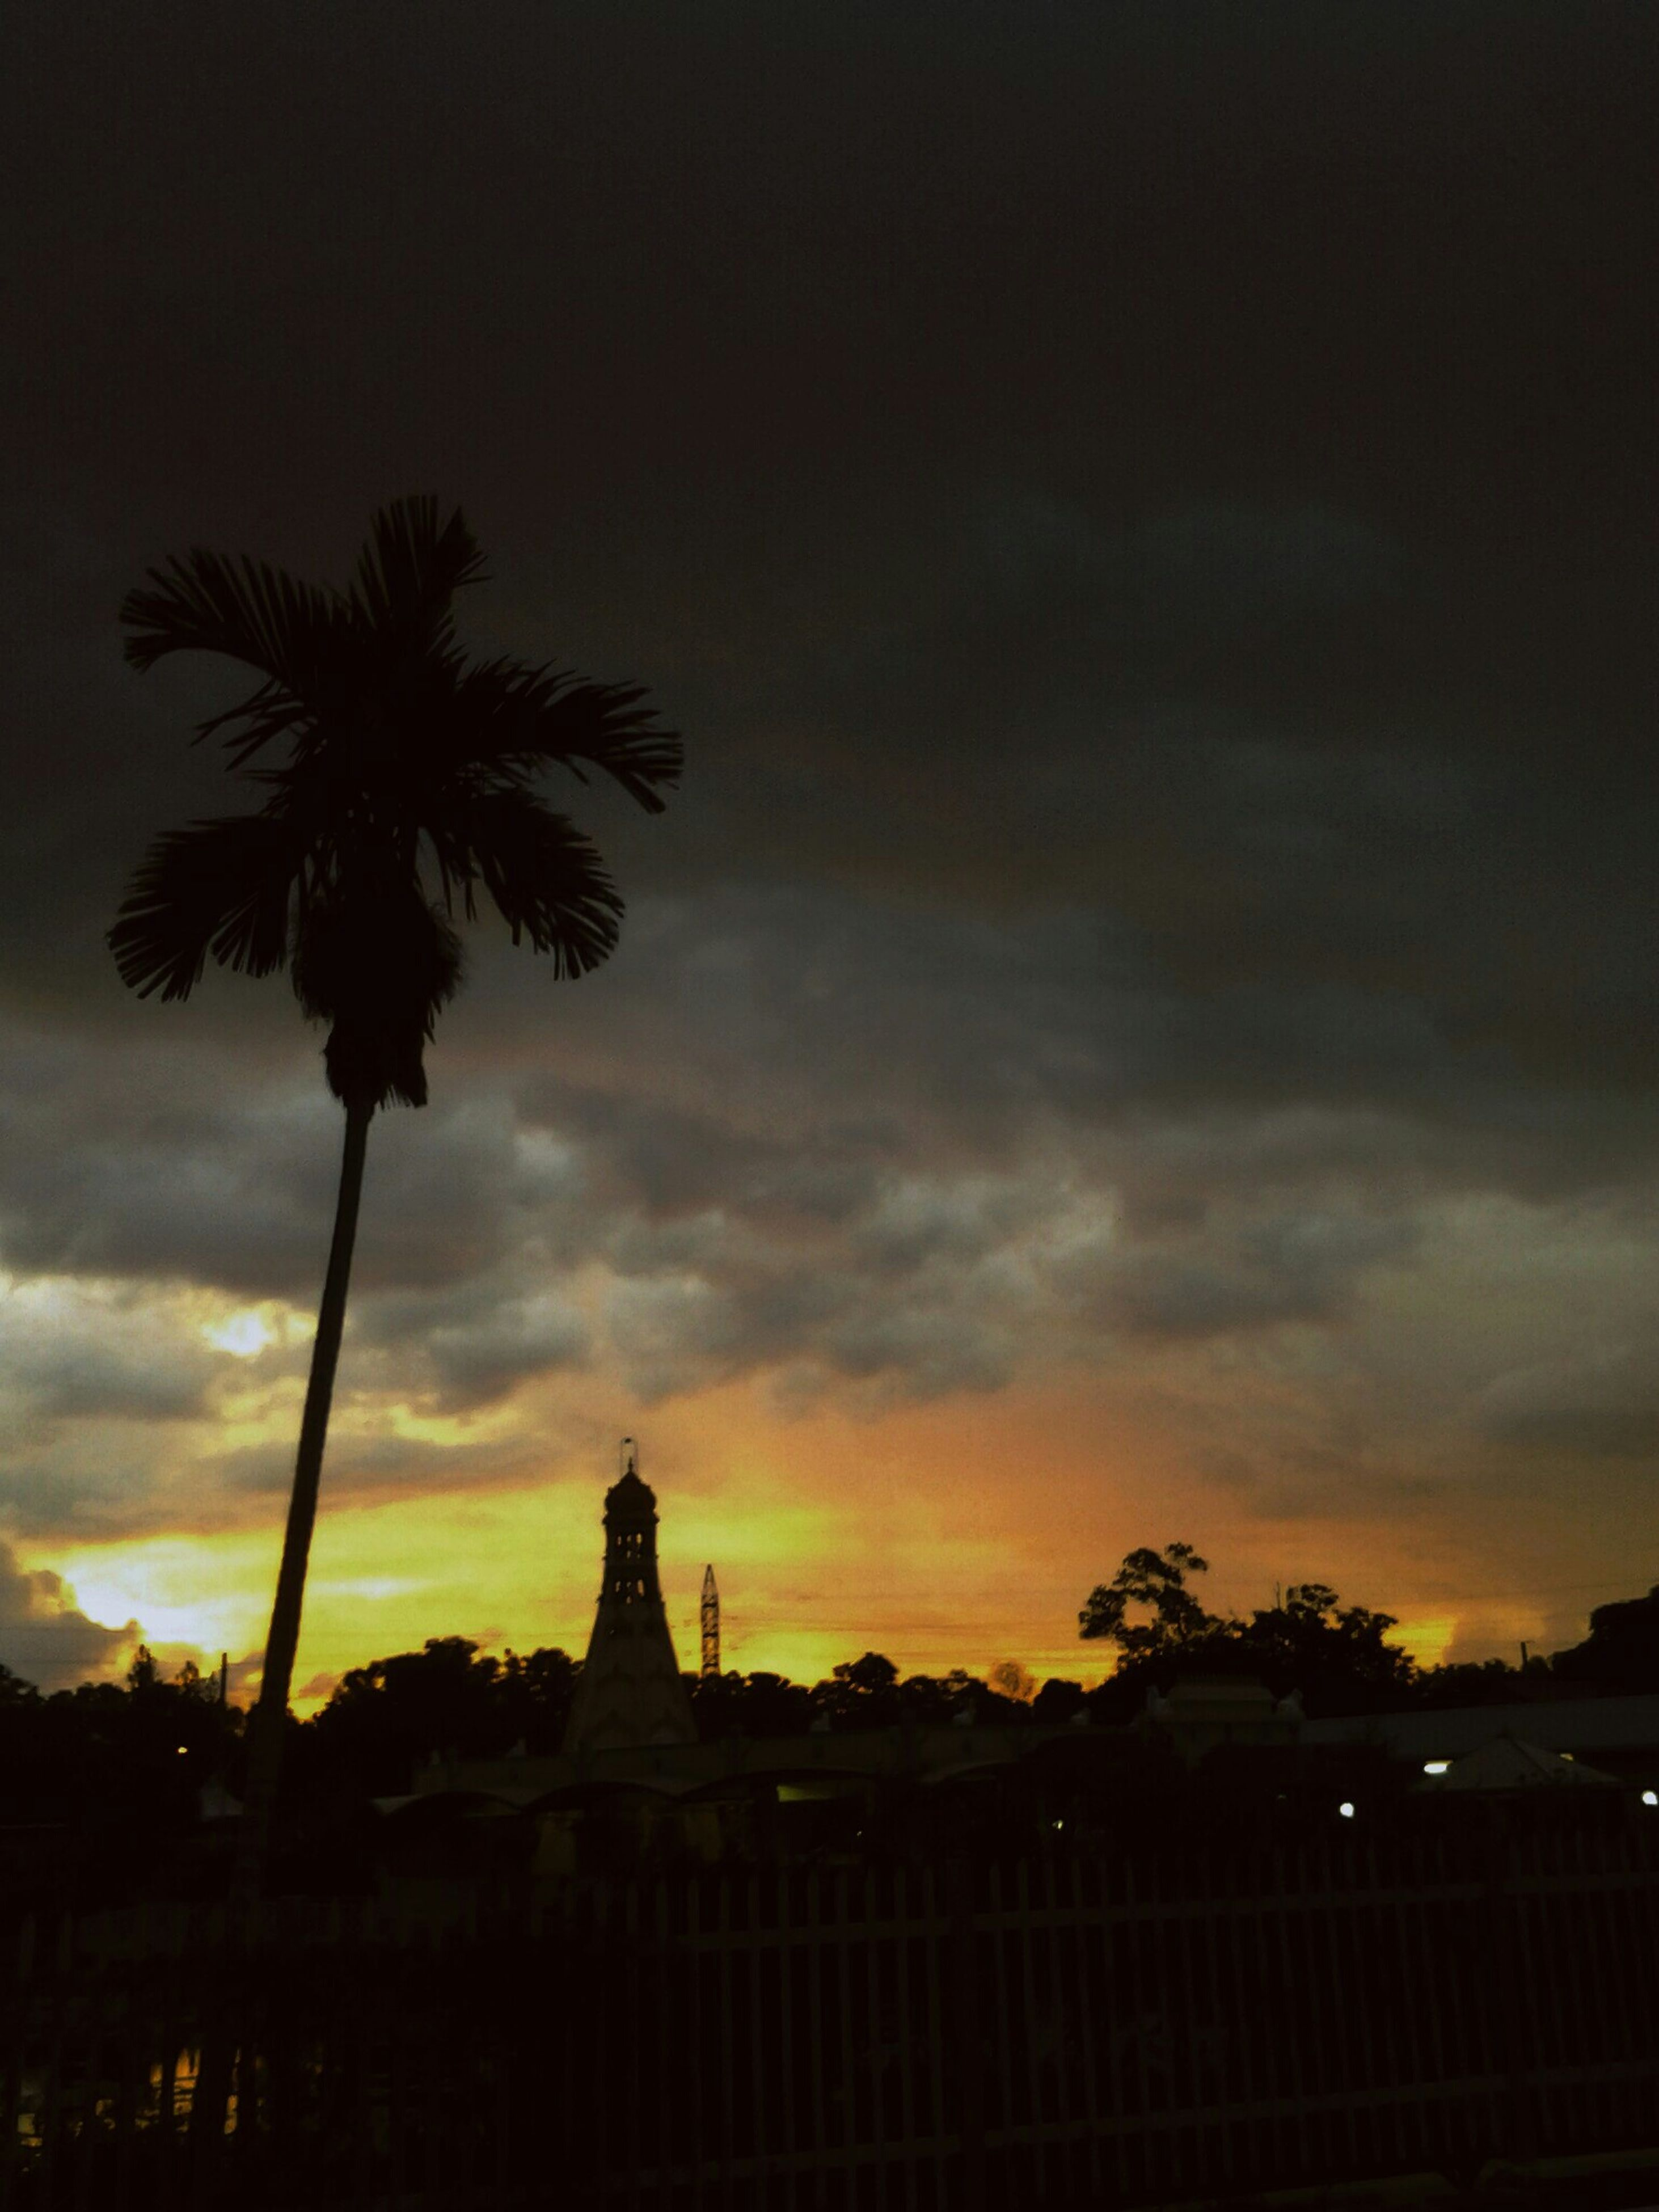 silhouette, sunset, tree, sky, palm tree, built structure, building exterior, architecture, cloud - sky, low angle view, beauty in nature, orange color, dusk, nature, dramatic sky, scenics, growth, tranquility, dark, cloud